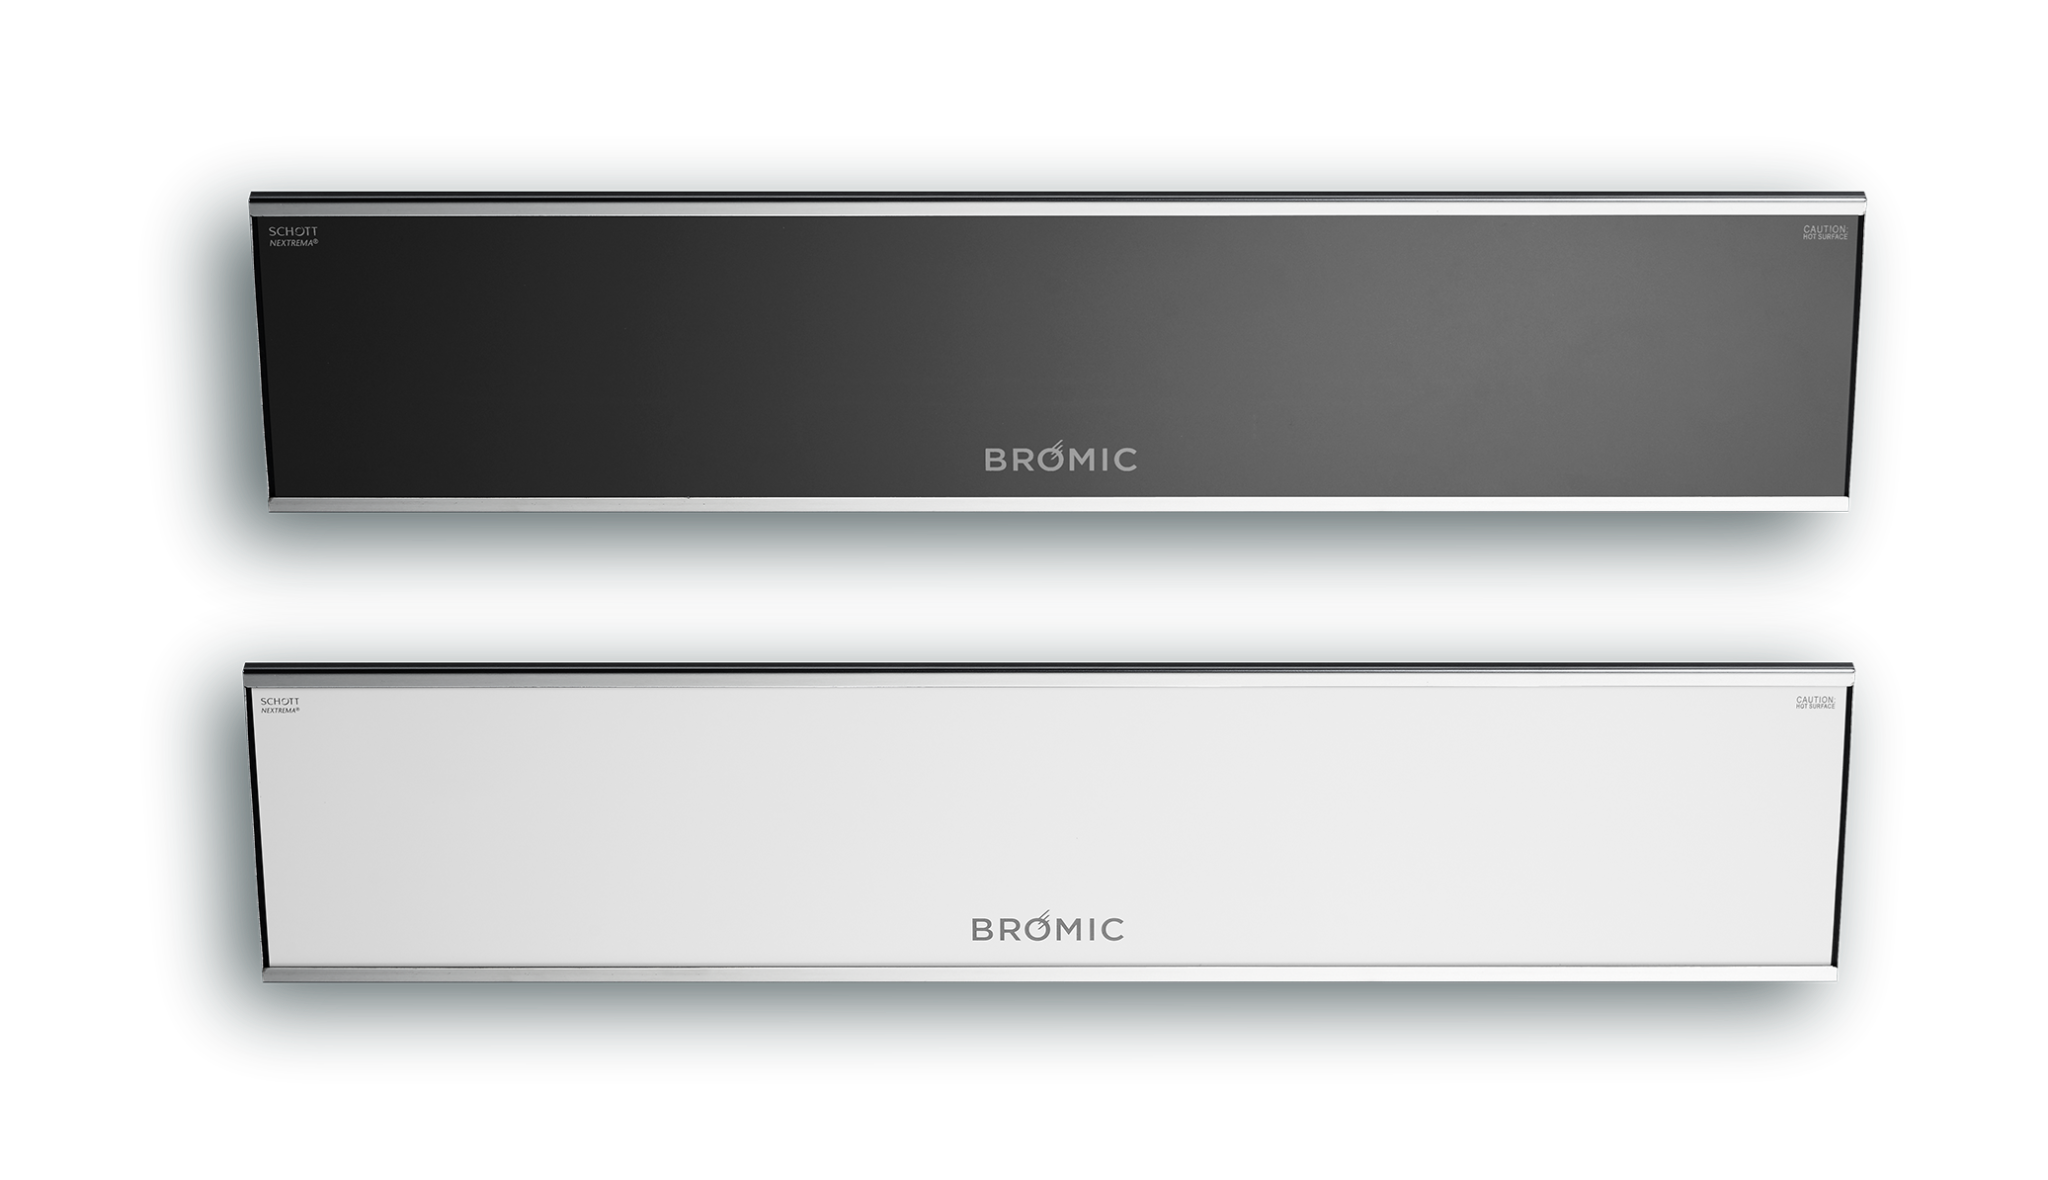 bromic-platinum-electric-1024x590@2x